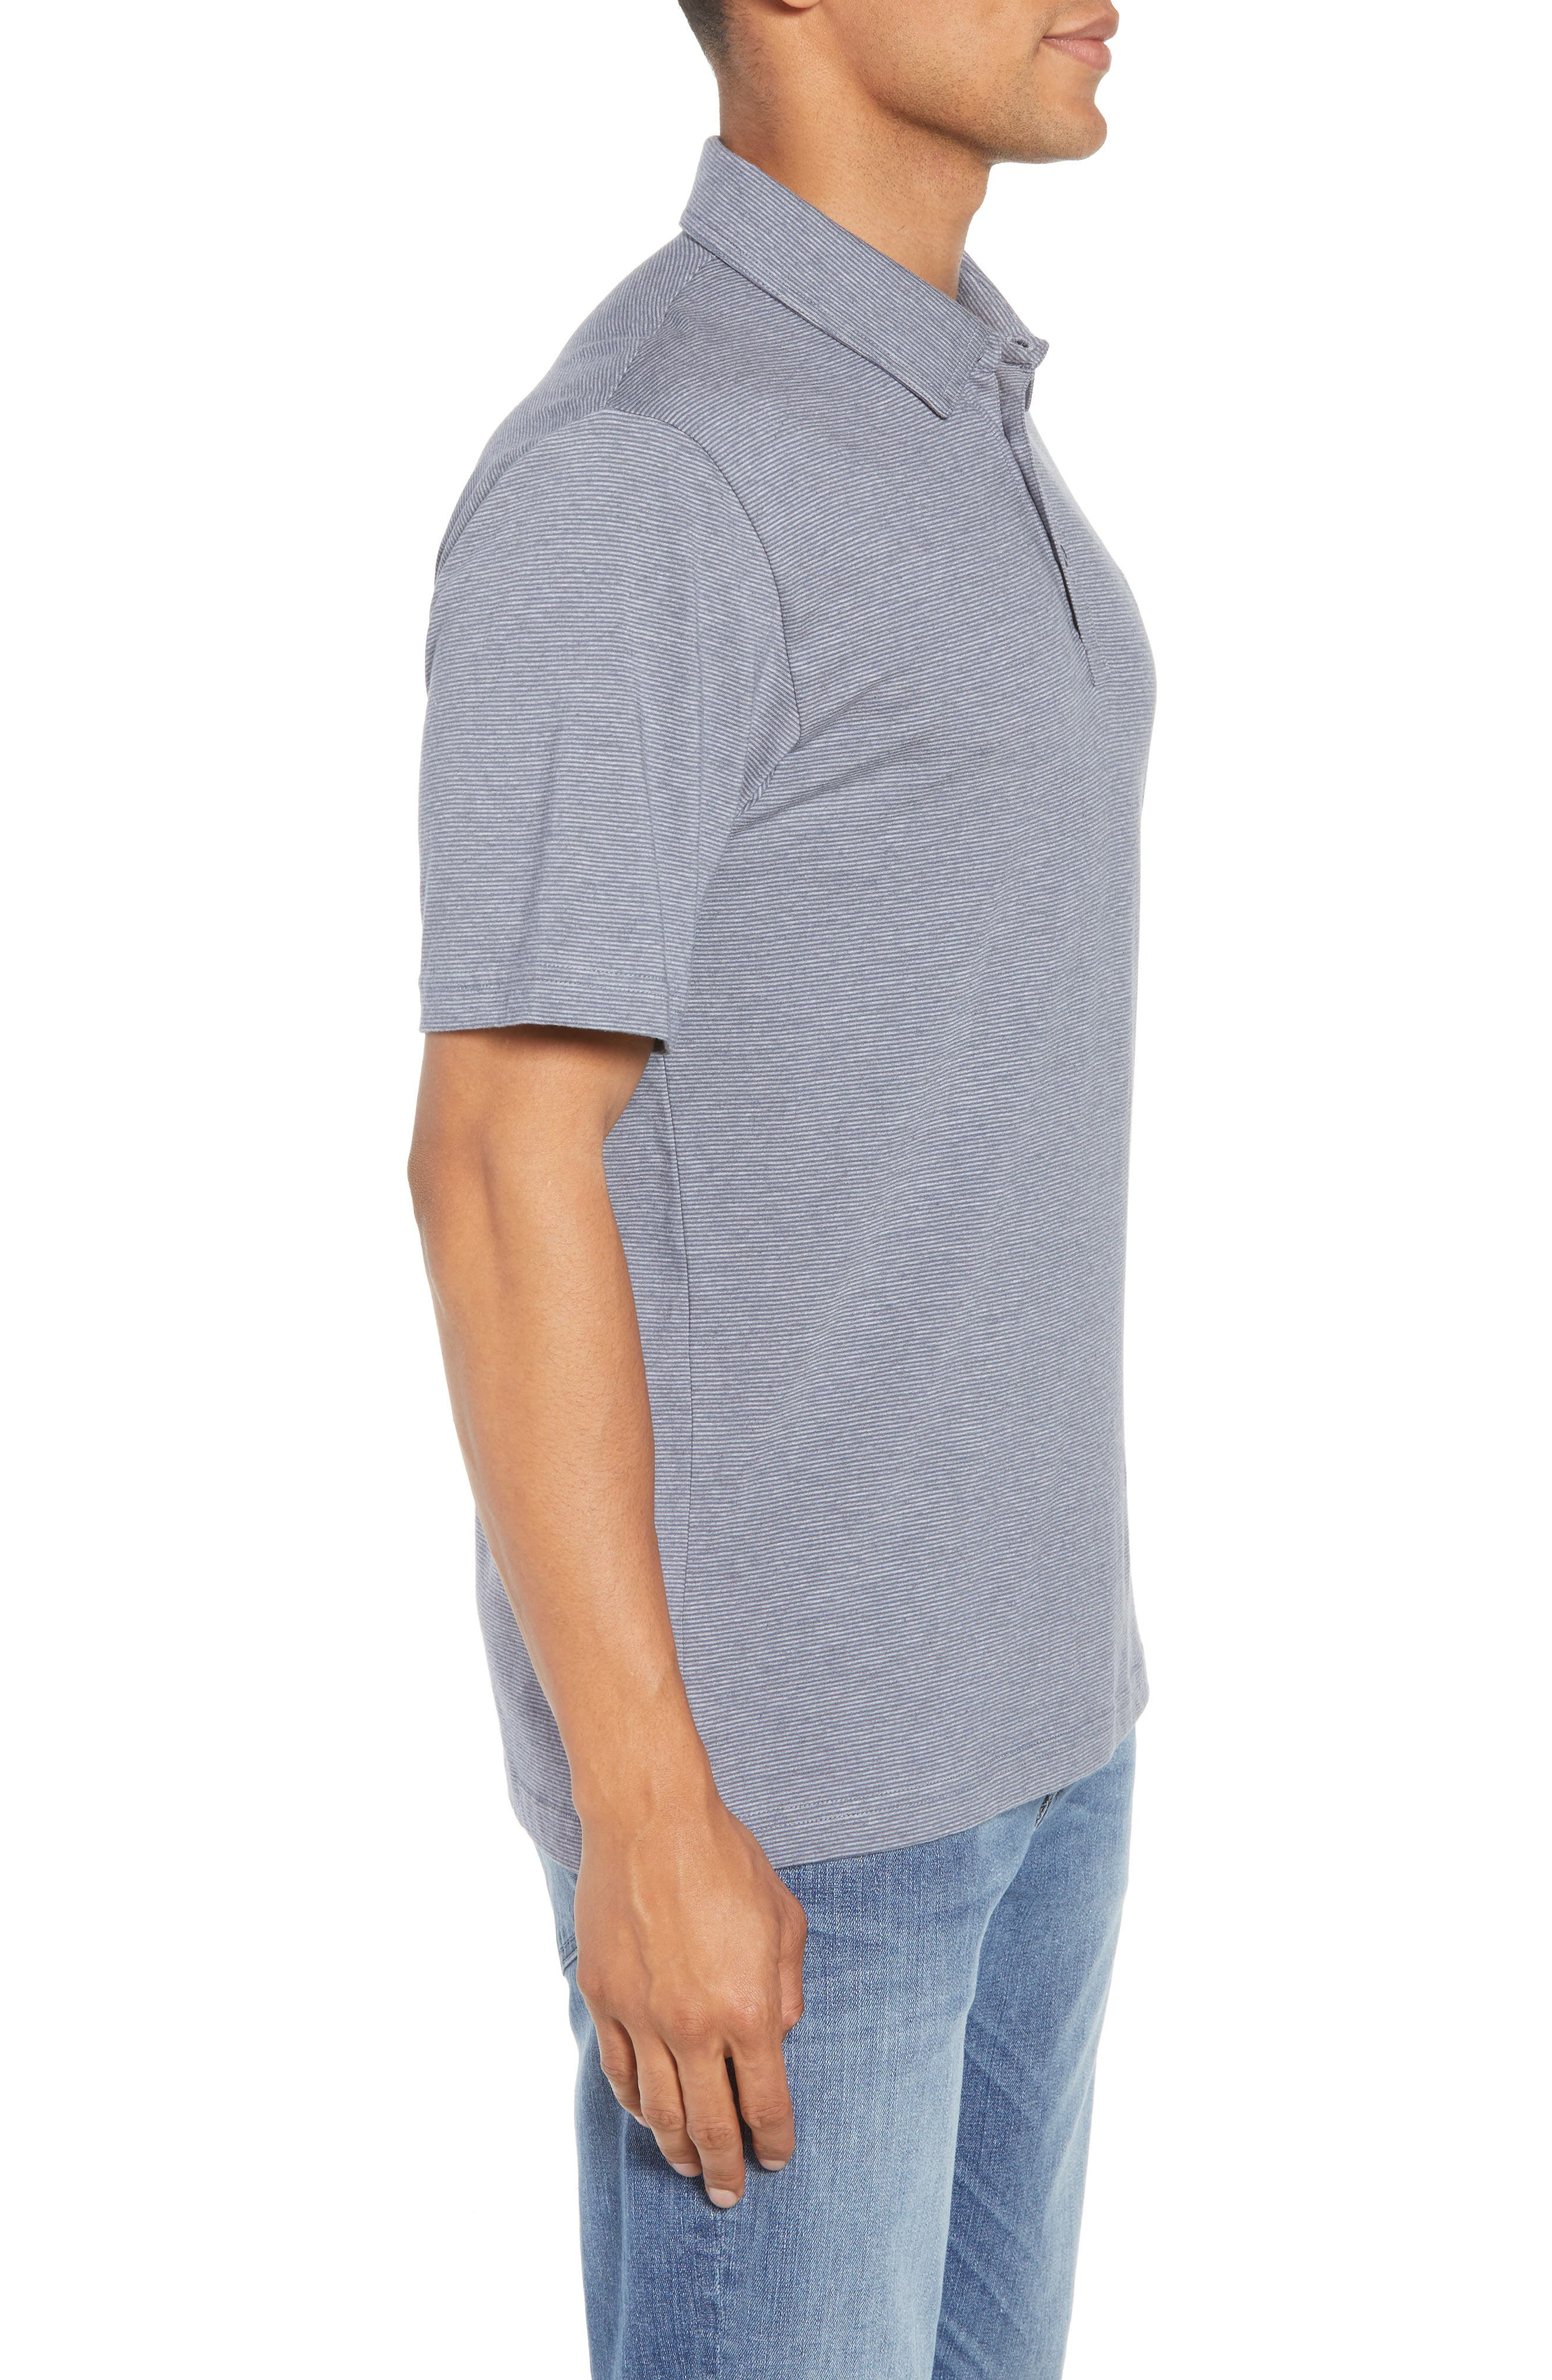 JQ Regular Fit Stripe Polo,                             Alternate thumbnail 3, color,                             Heather Grisaille